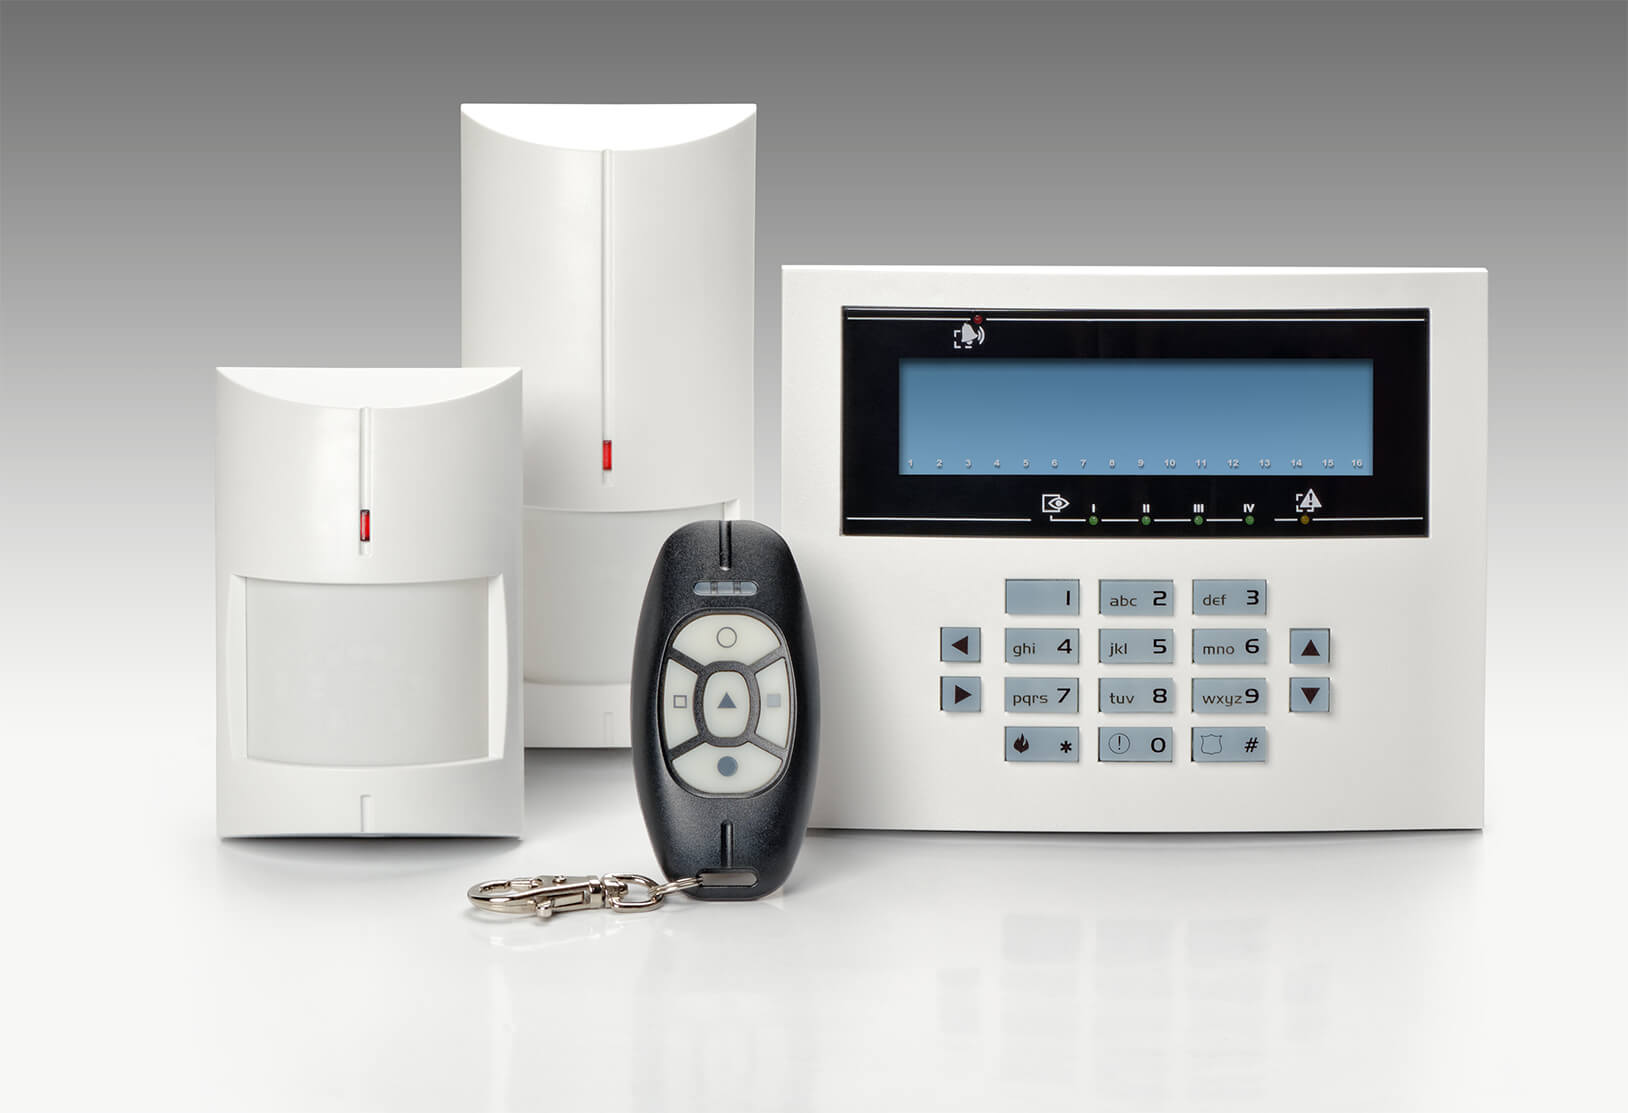 Business & Residential NACOSS Approved Burglar Alarms In South Tottenham N15 - Local South Tottenham N15 security company.Call 02078872244 - Dedicated to Safety & Security. Companies, shops and homes ..